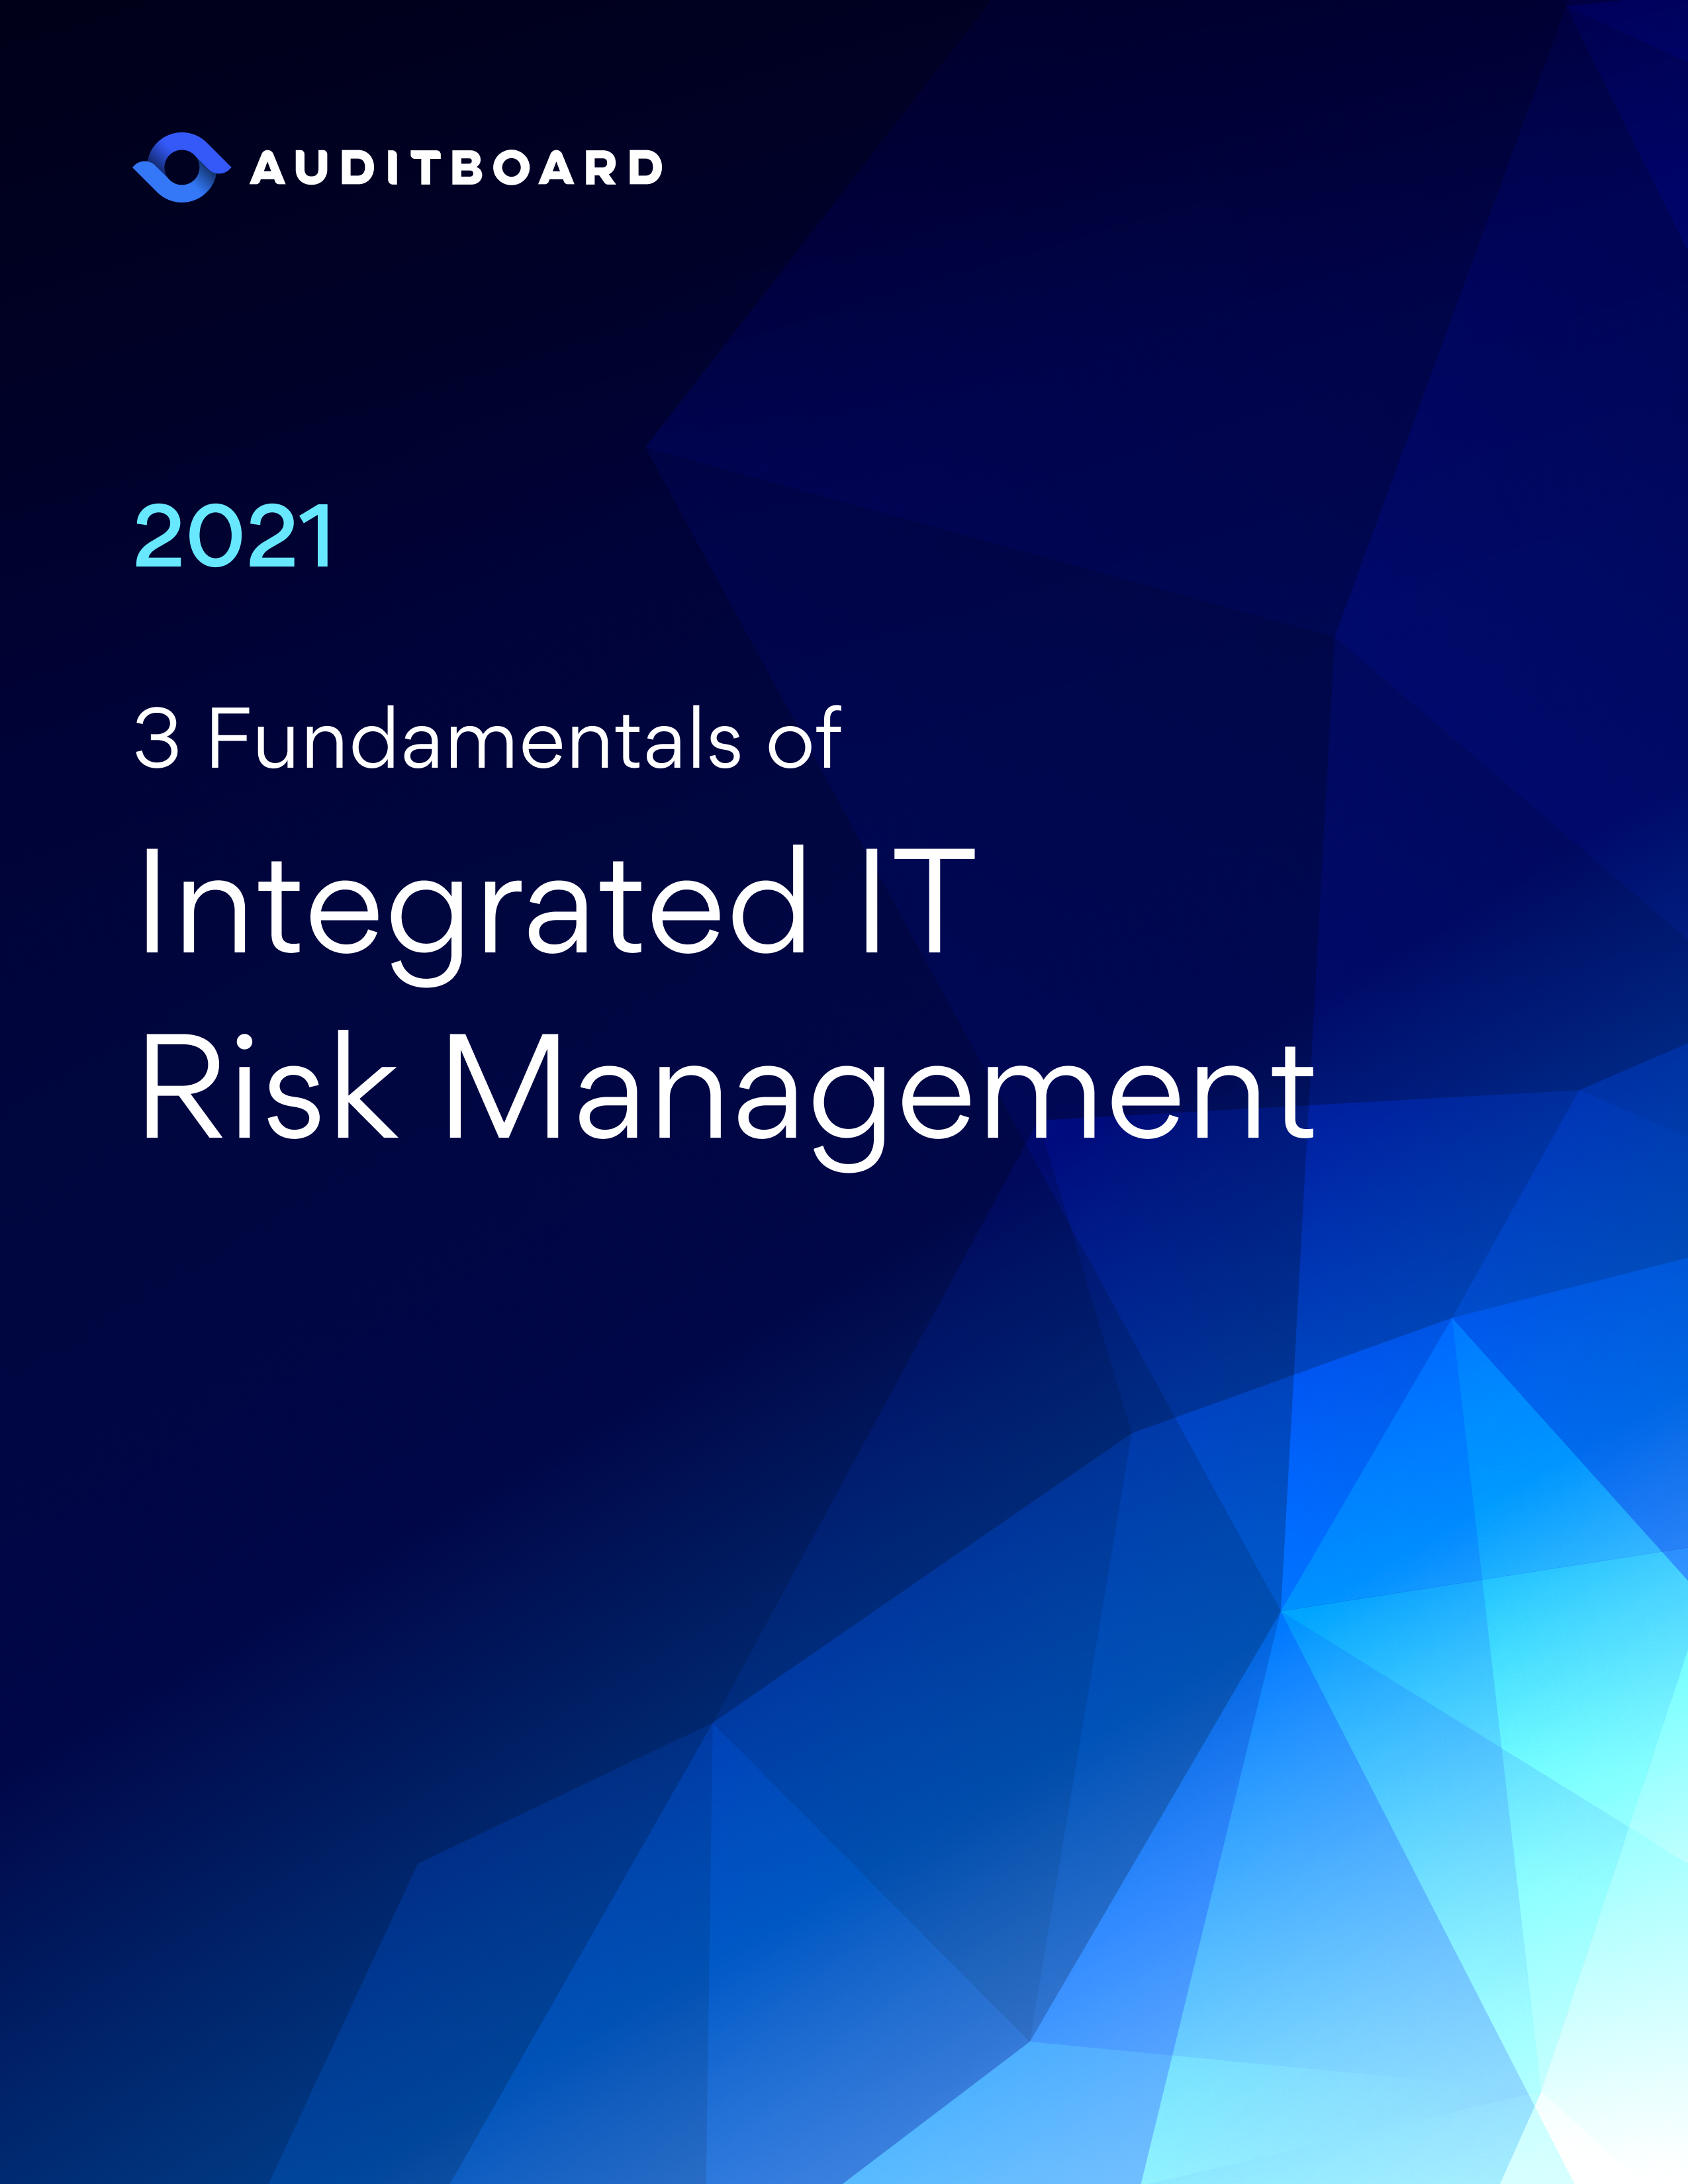 3 Fundamentals of Integrated IT Risk Management